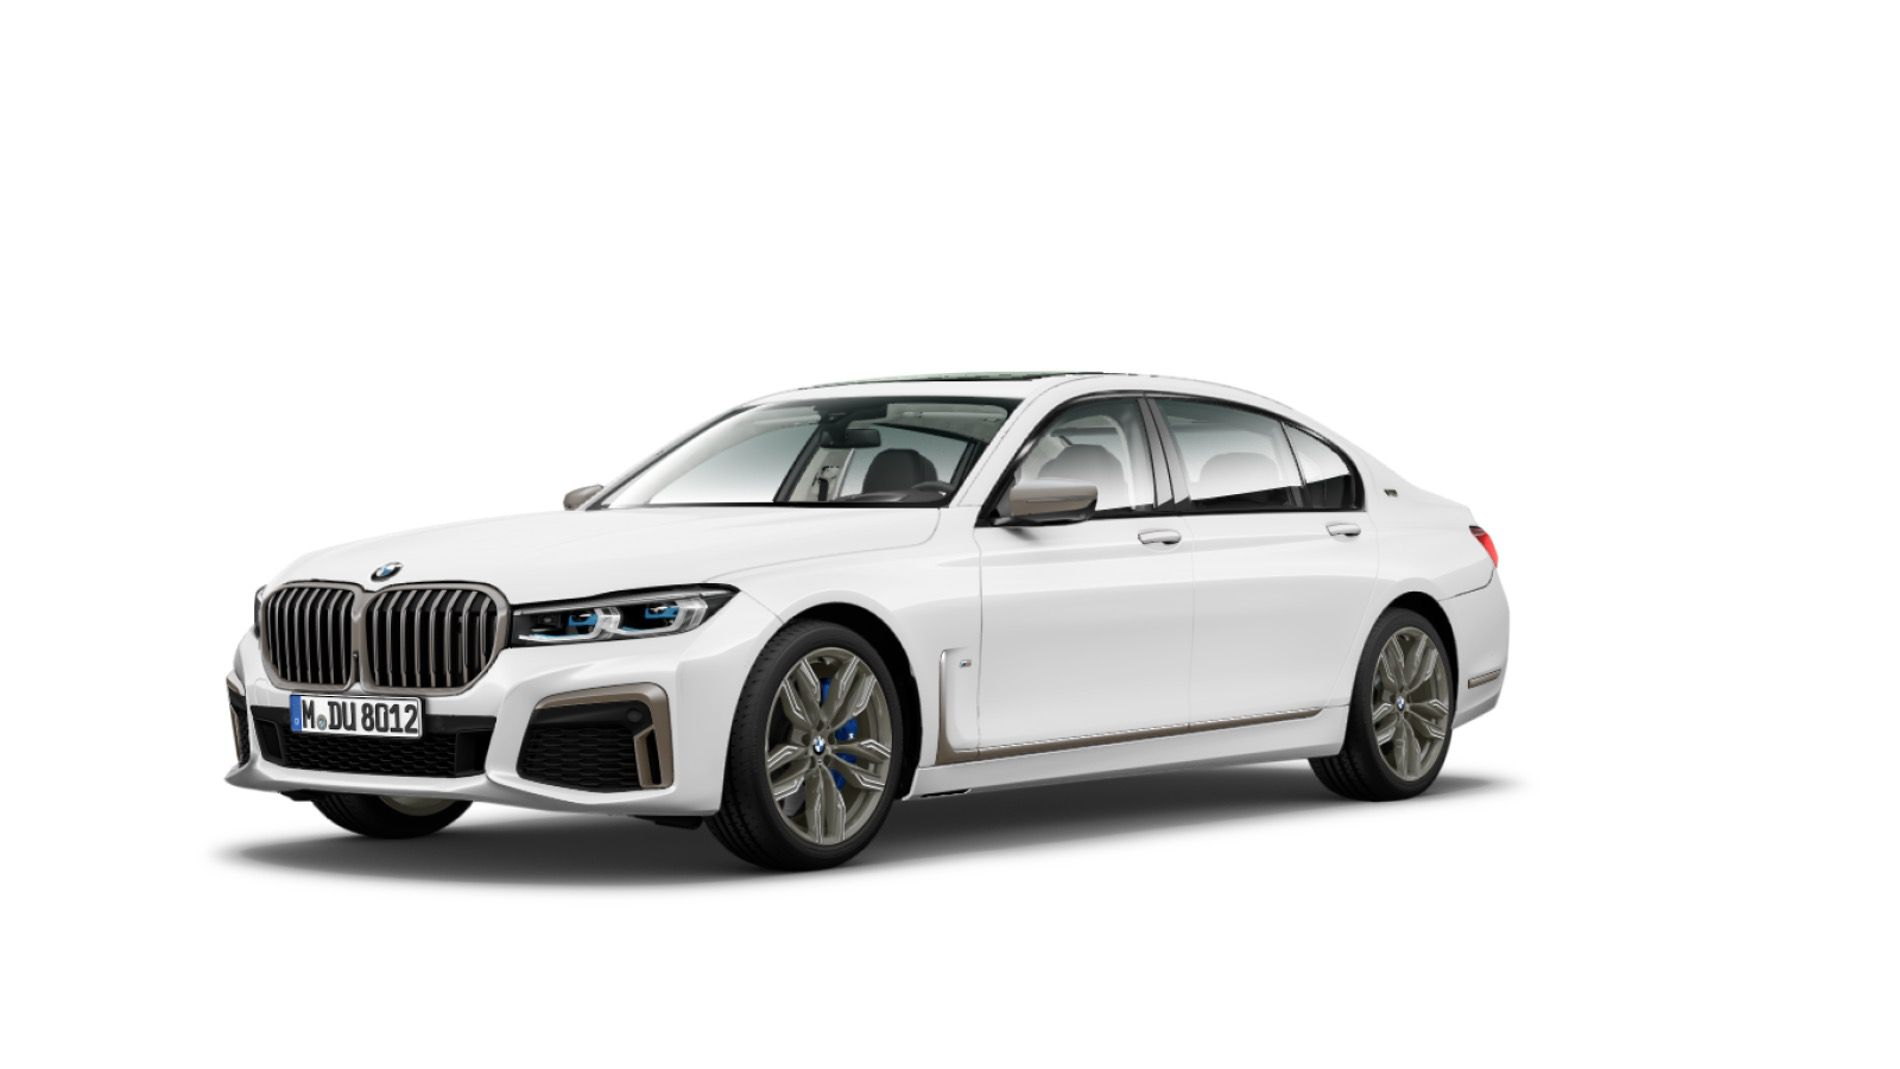 BMW 7 Series Facelift Fully Leaked (Front and Rear)